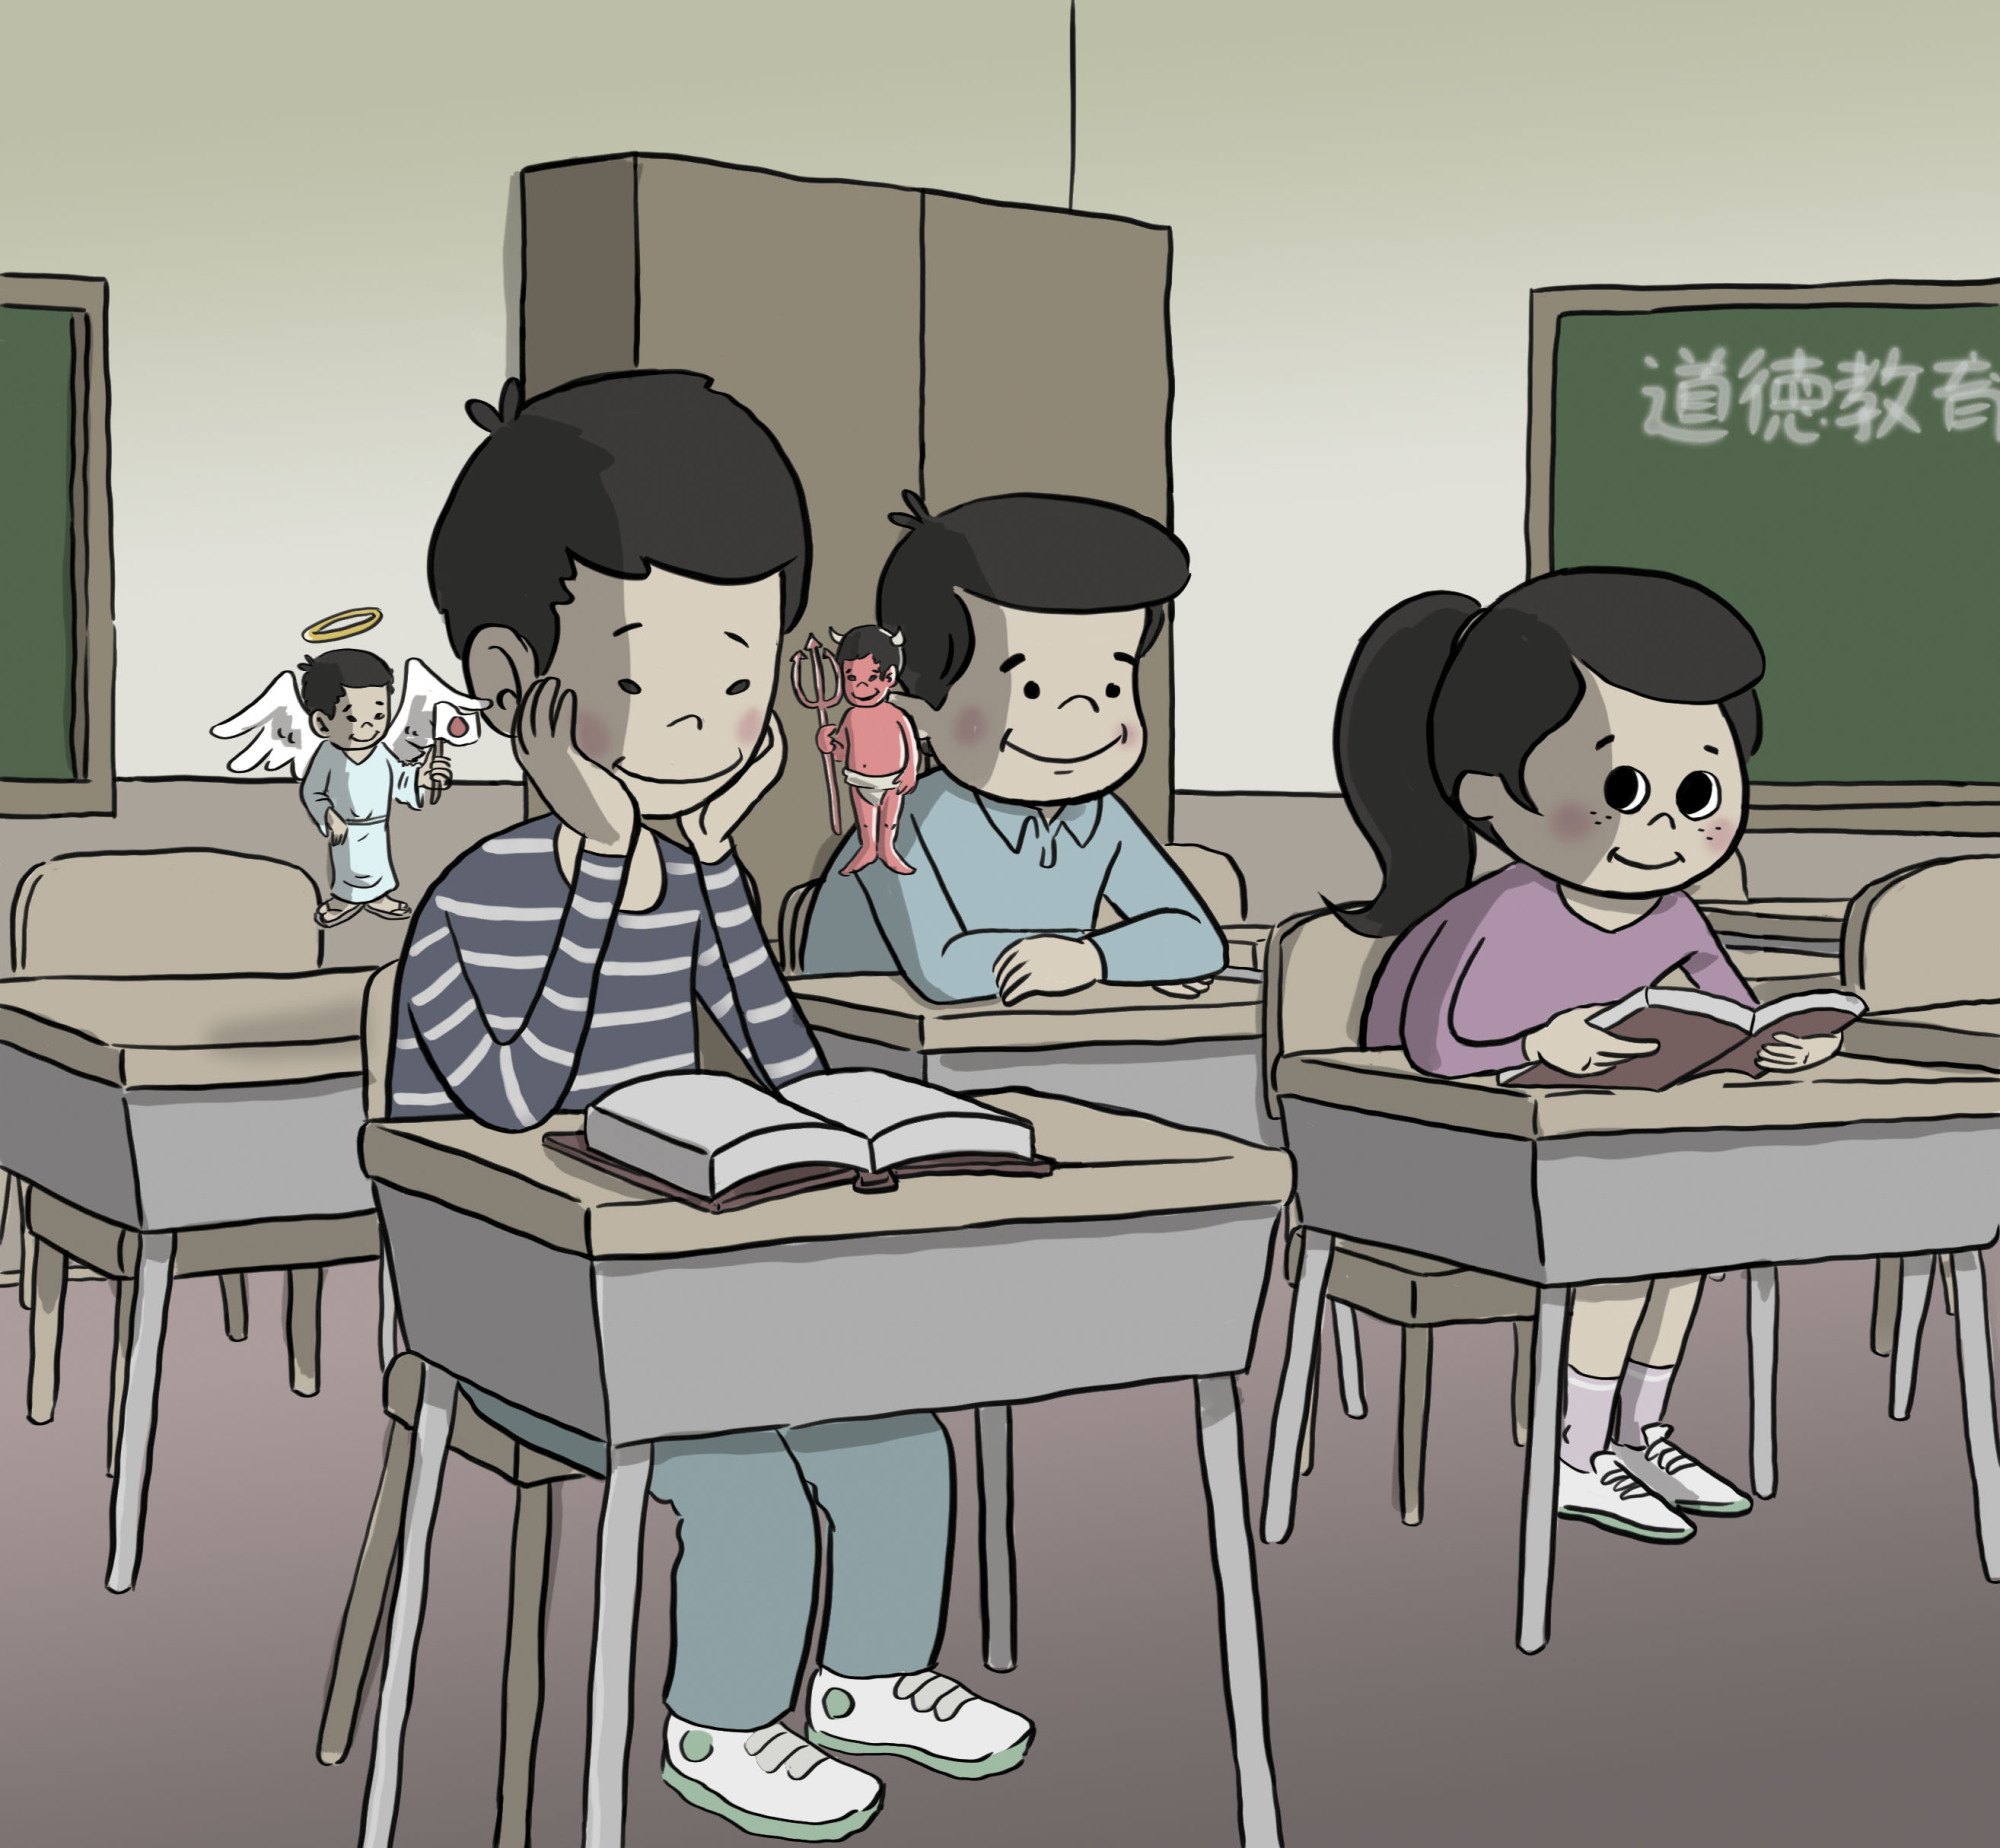 The children are our future: A Japanese morality textbook is filled with tales that the authorities hope will mold young minds and help them become functioning citizens. | ILLUSTRATION BY ADAM PASION